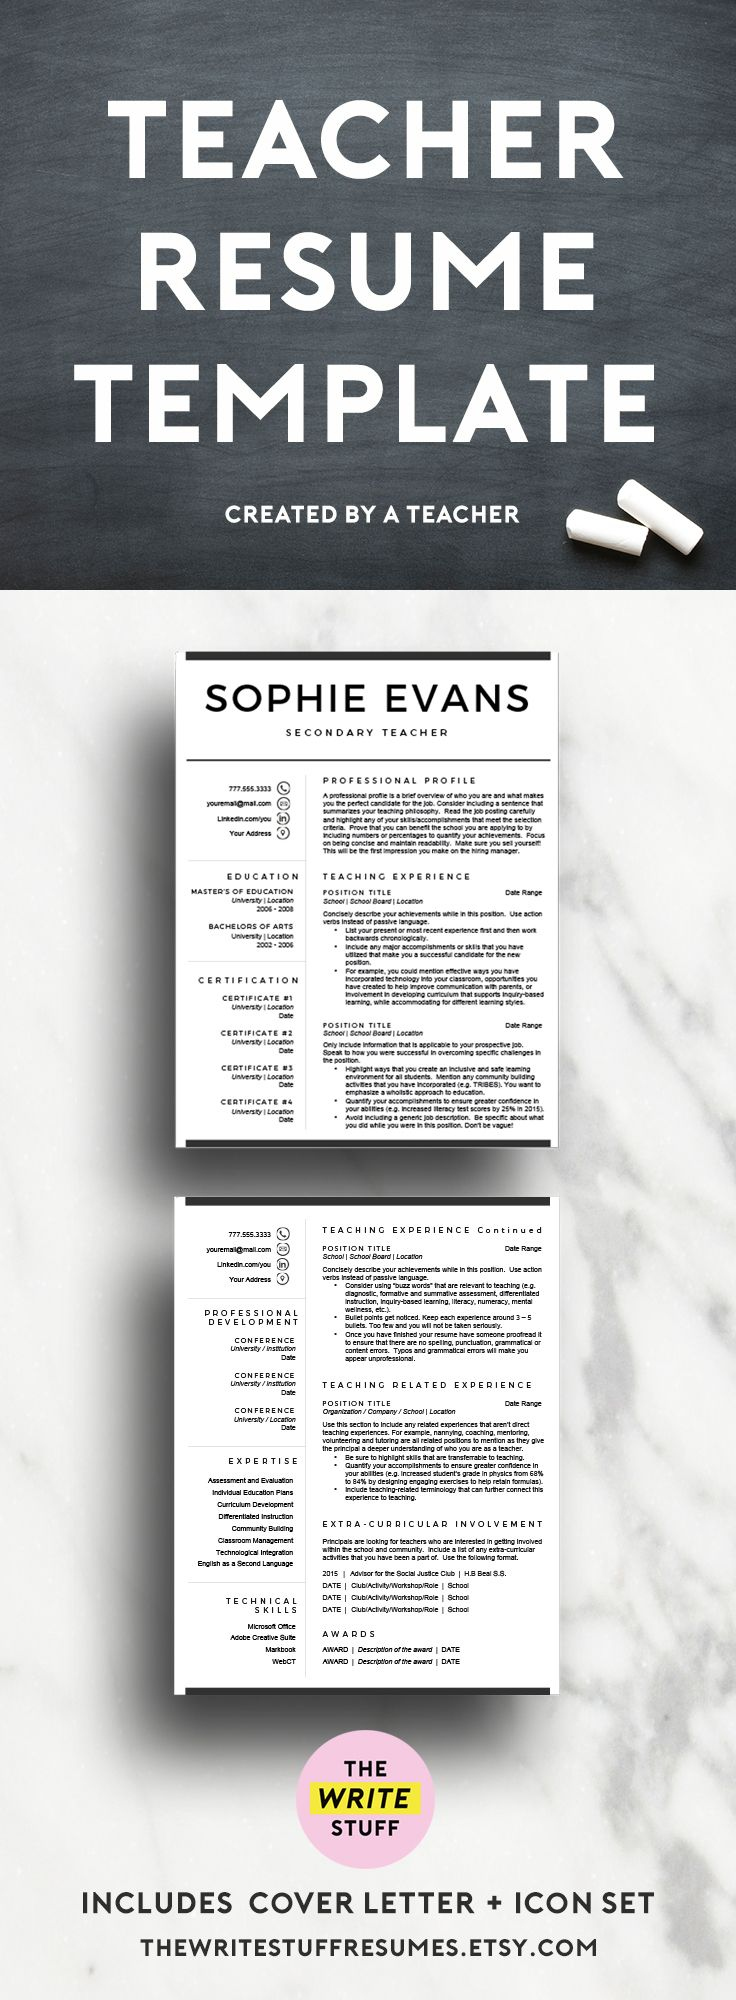 The 25 Best Teacher Resume Template Ideas On Pinterest Resume